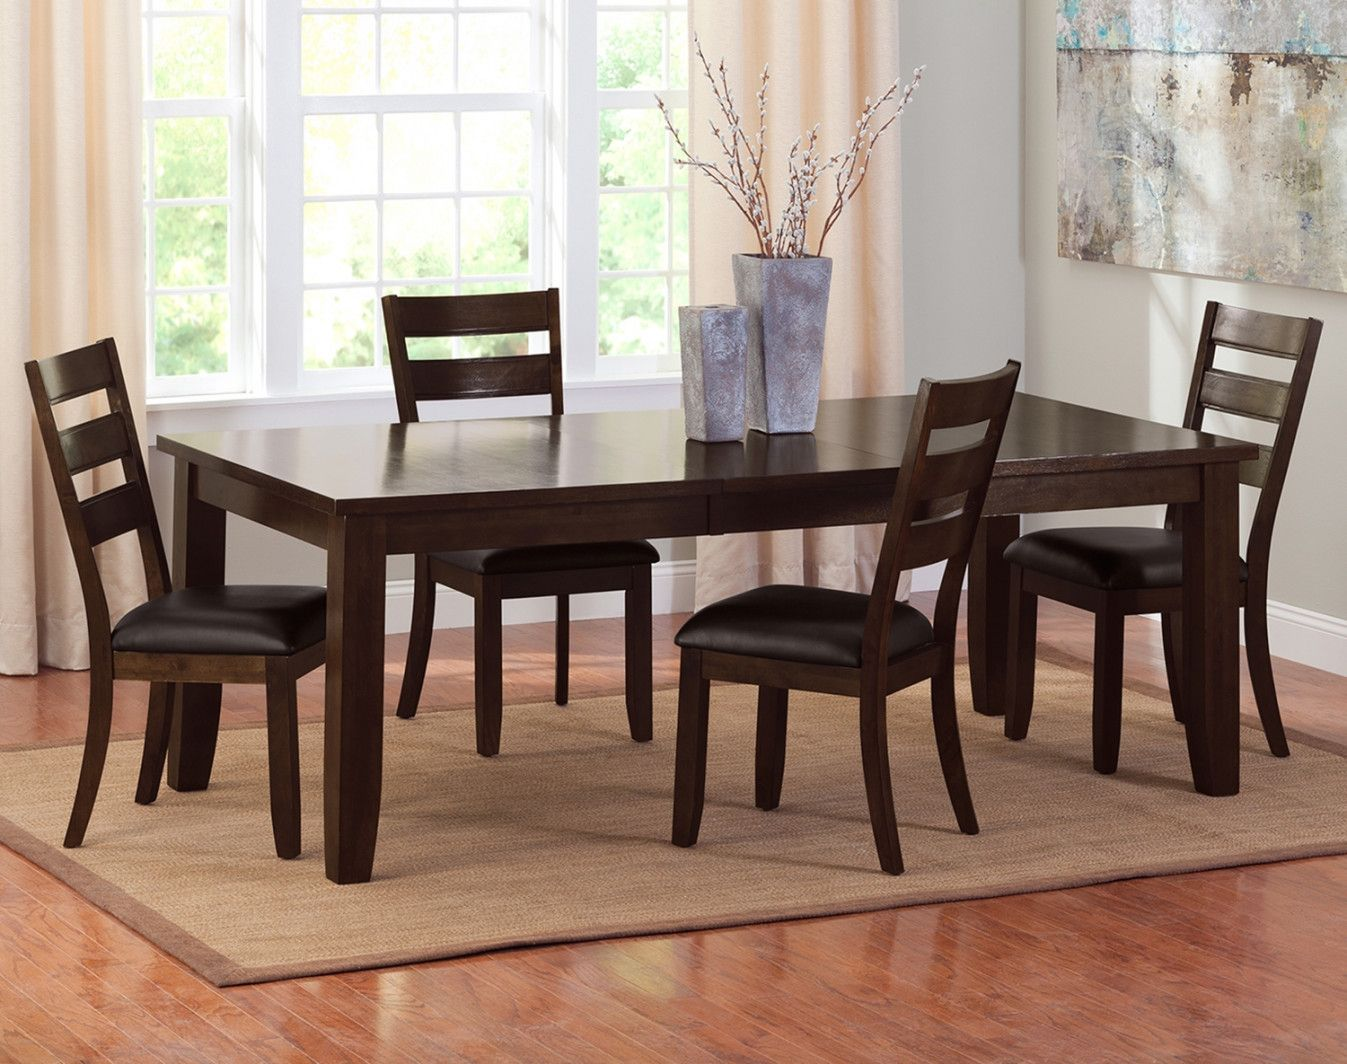 99 Value City Dining Room Chairs